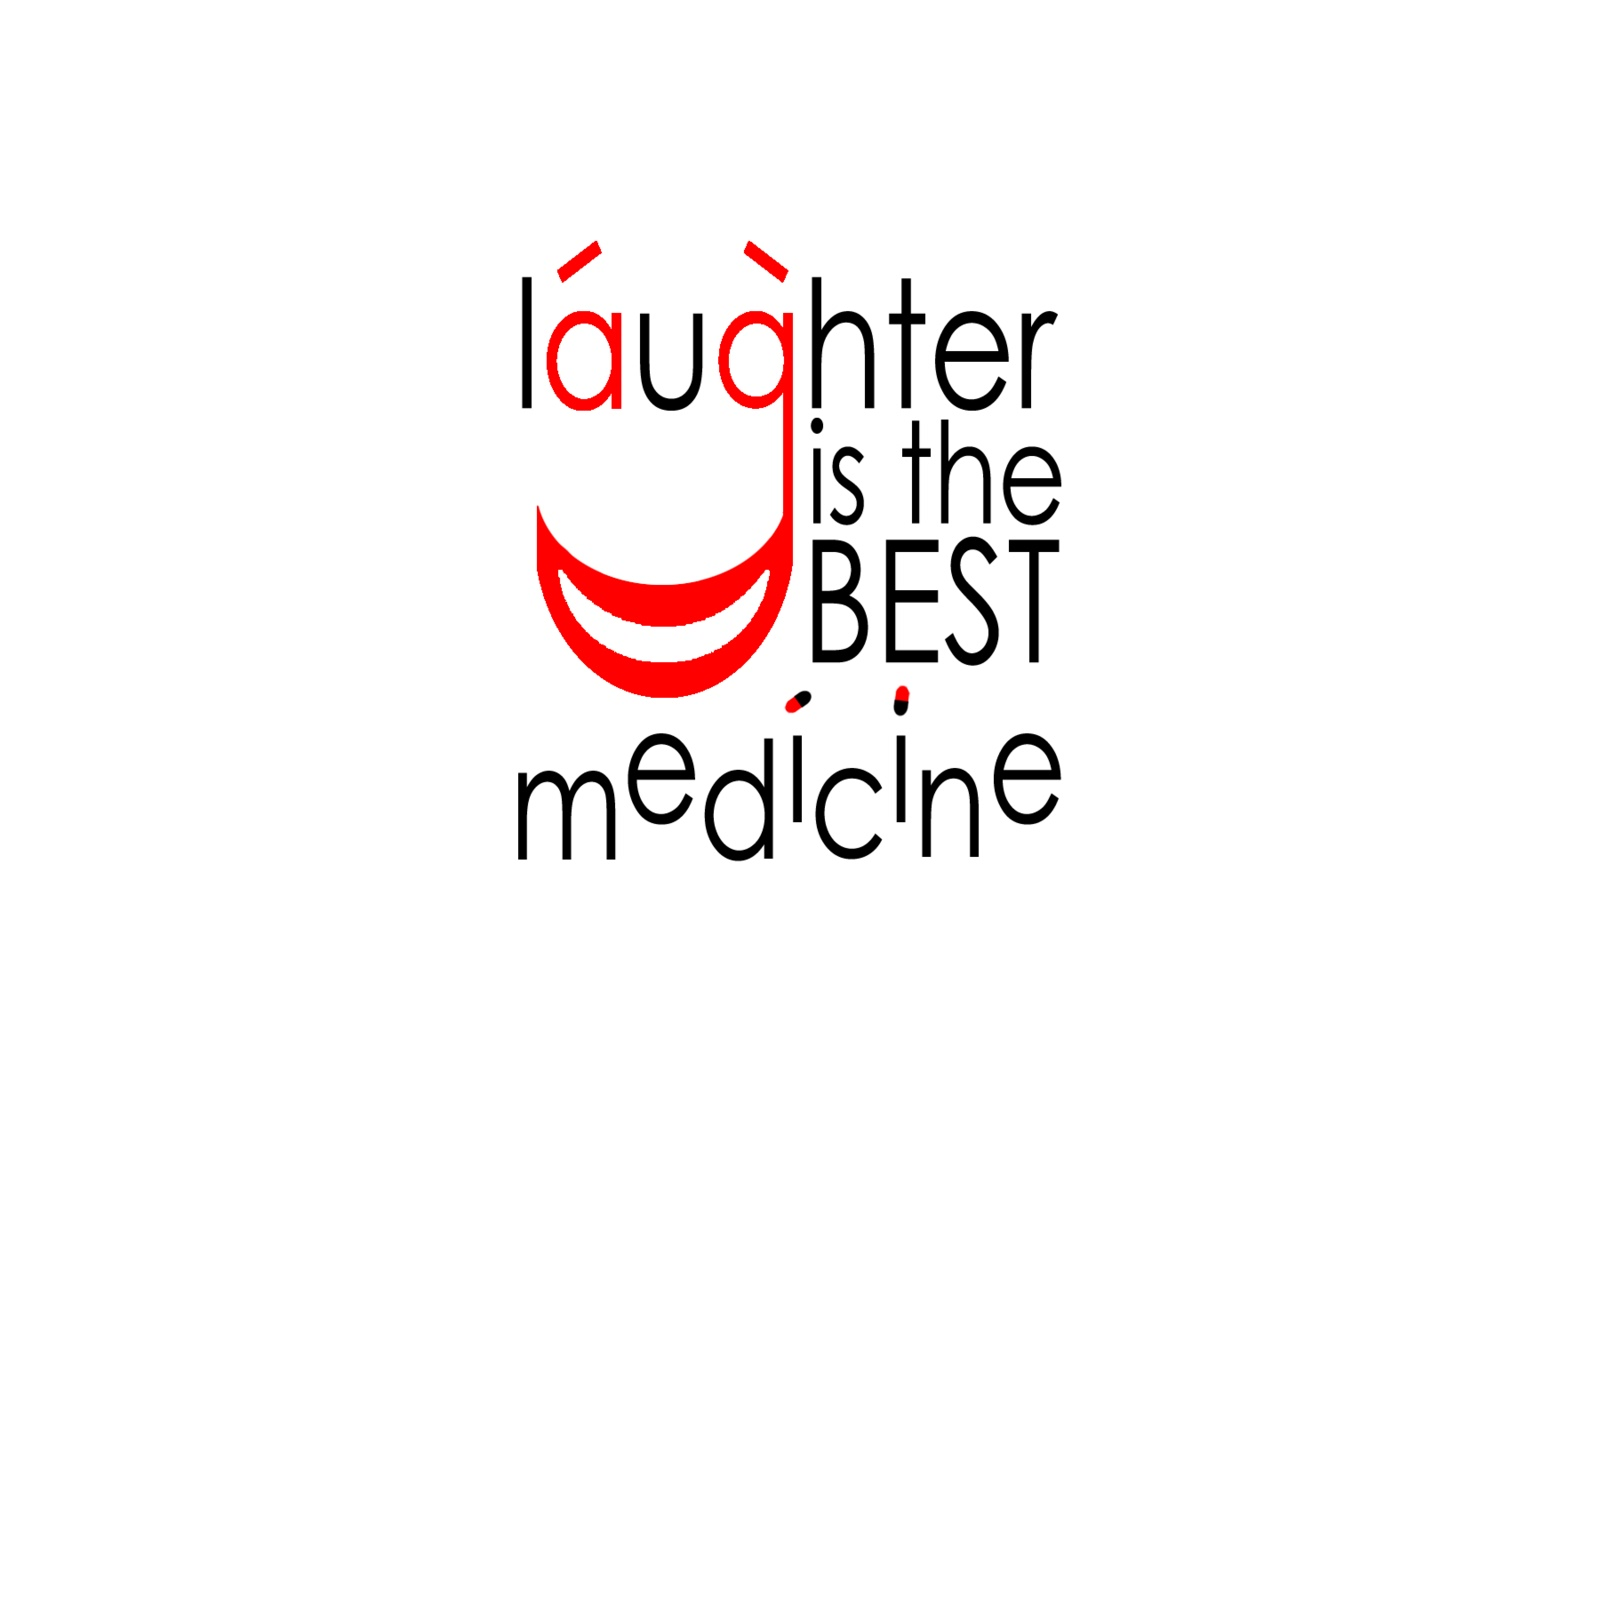 laughter is the best medicine conclusion I believe that laughter is the best medicine essay  debate on immigration essay conclusion how to start a research paper about legalizing marijuana gender discrimination proposal essay american veterans essay letters essay on dignity of honesty.